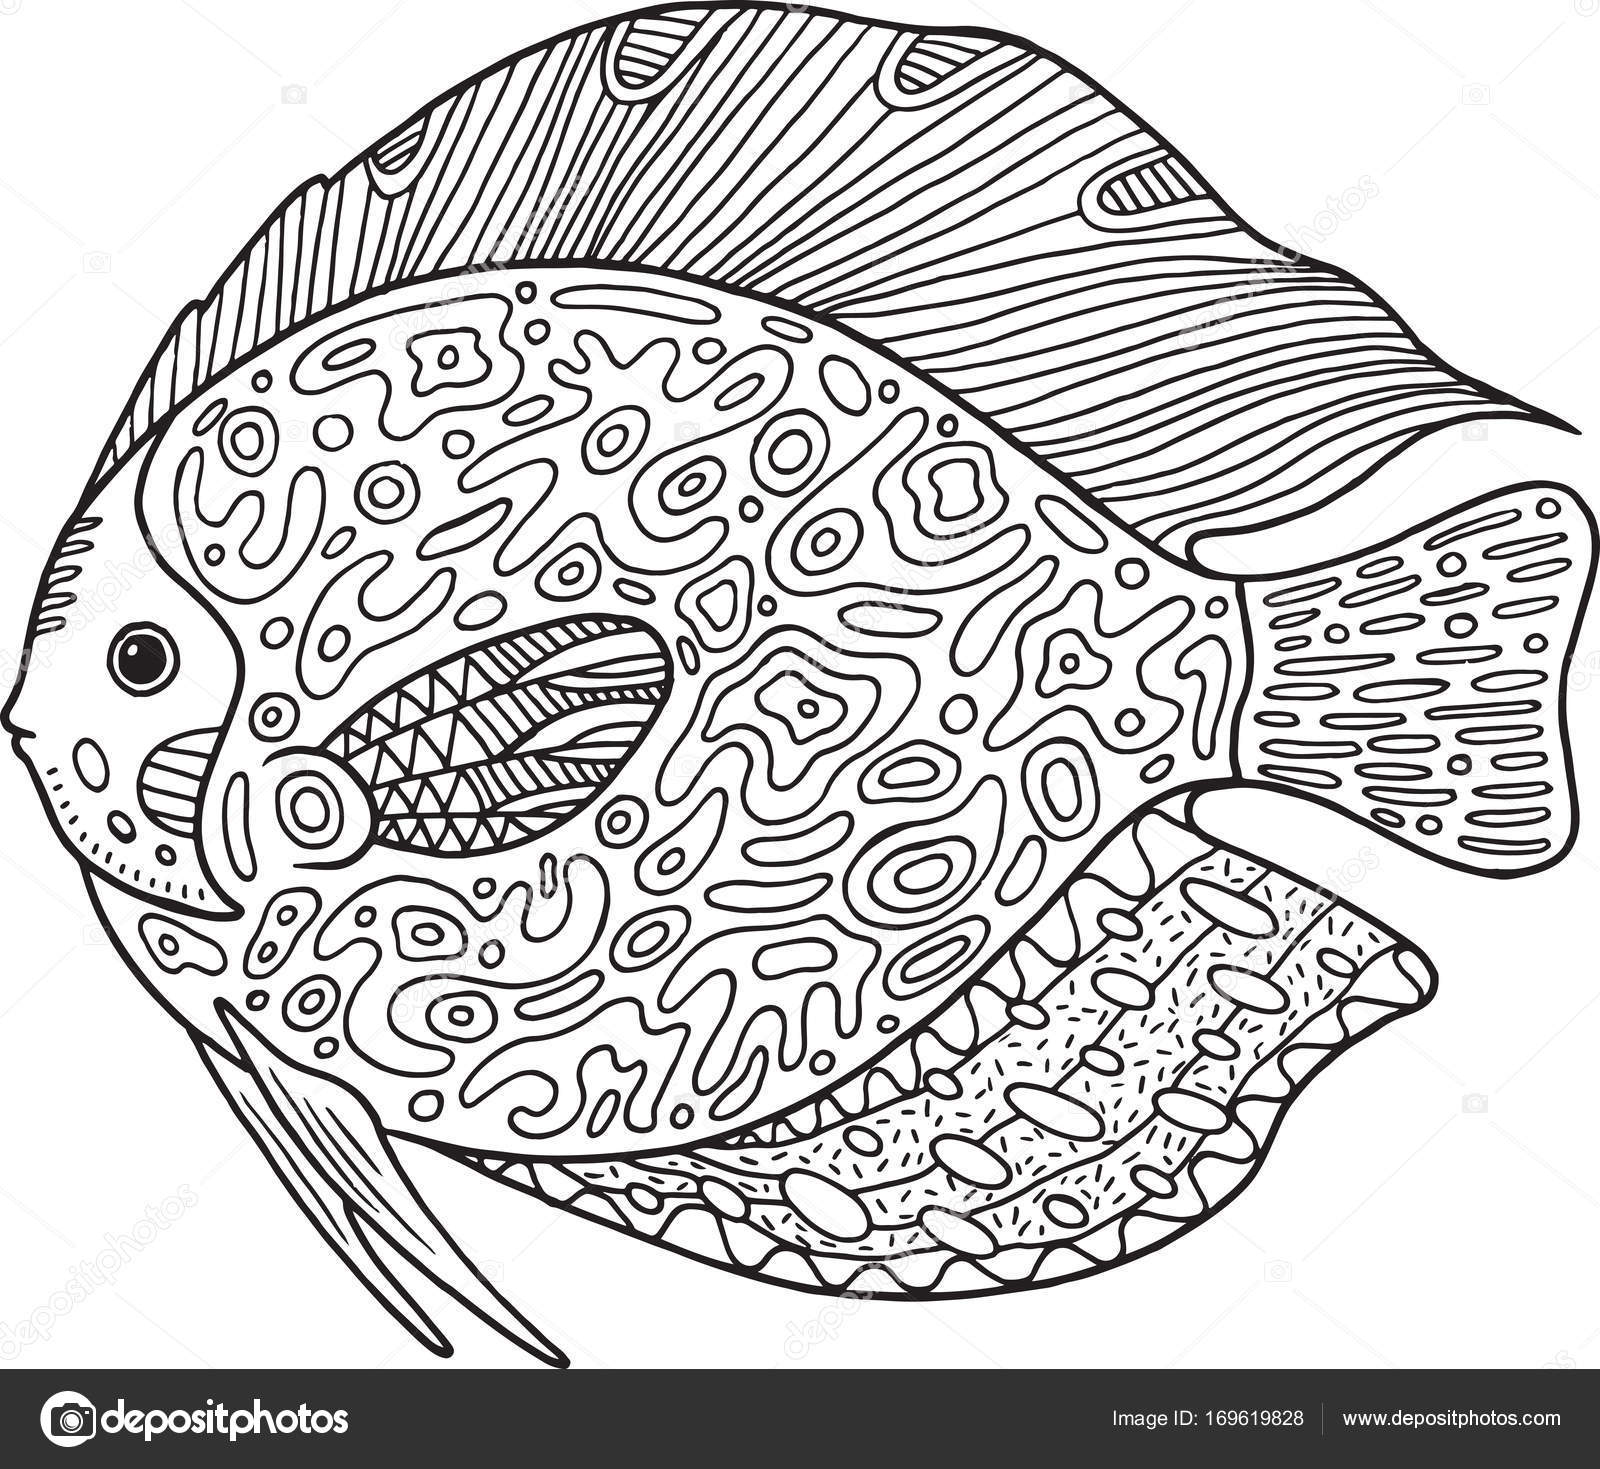 Doodle zentangle fish coloring page with animal for adults stock illustration